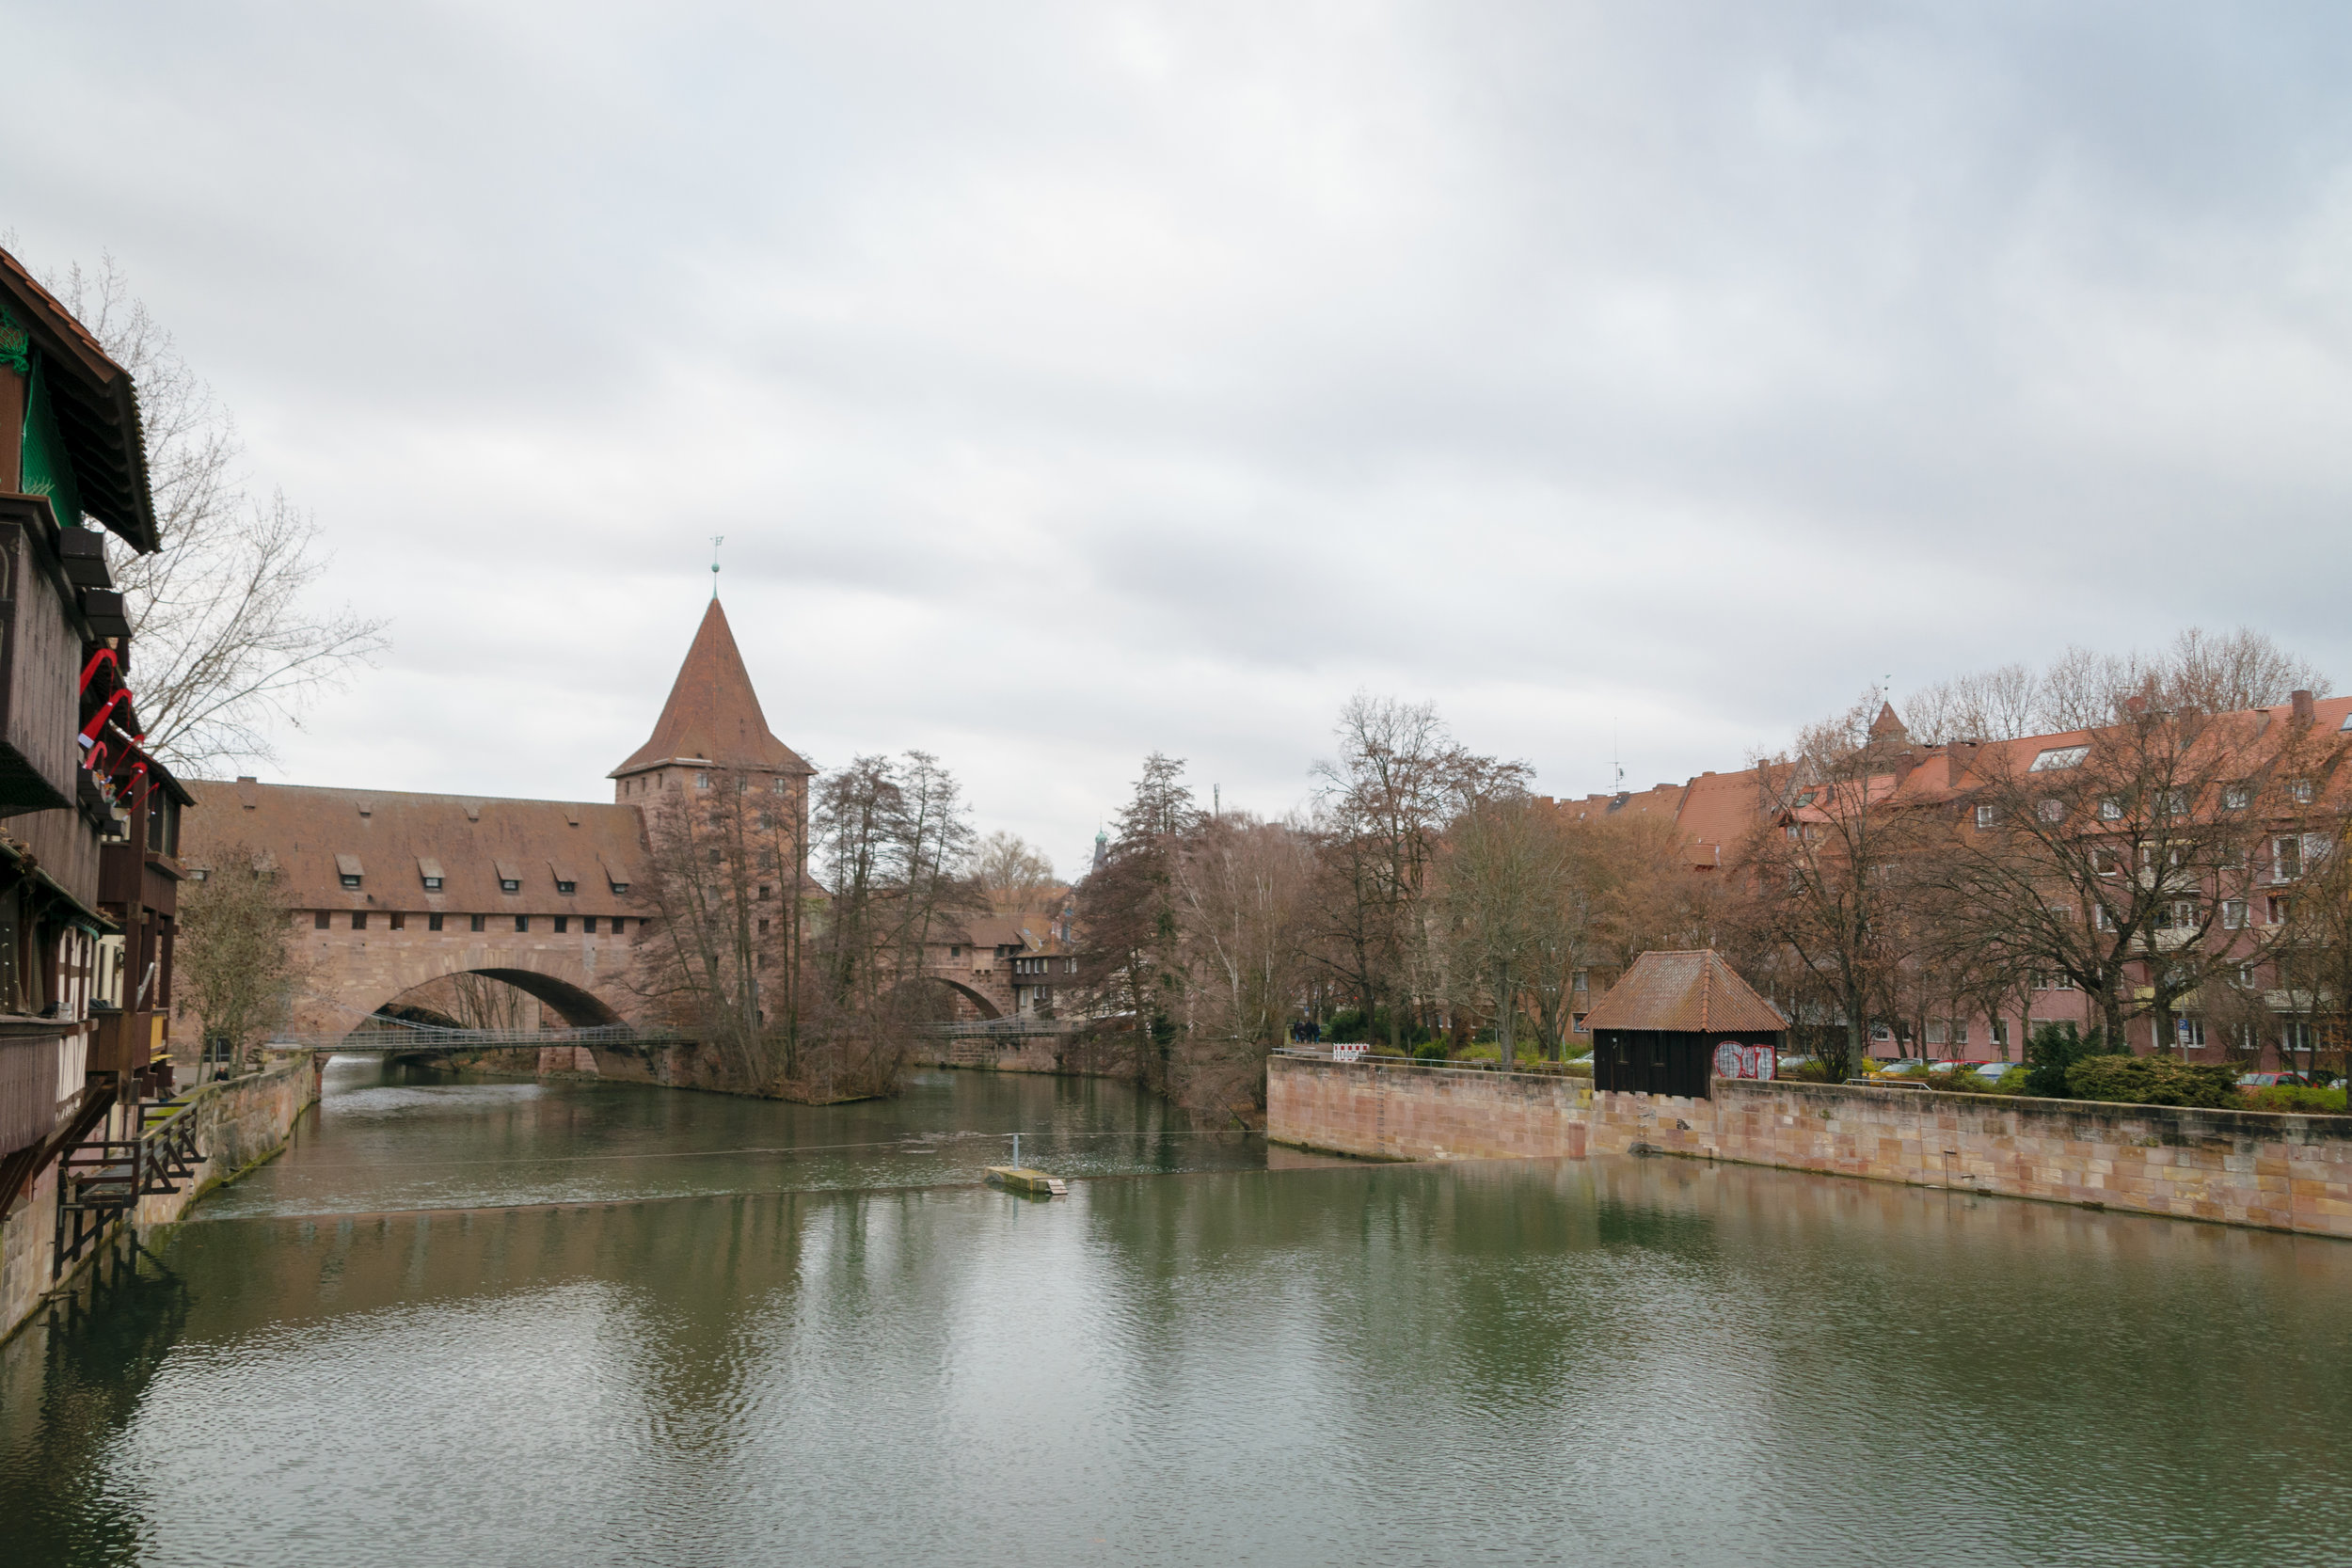 the Pegnitz river bisects the old town